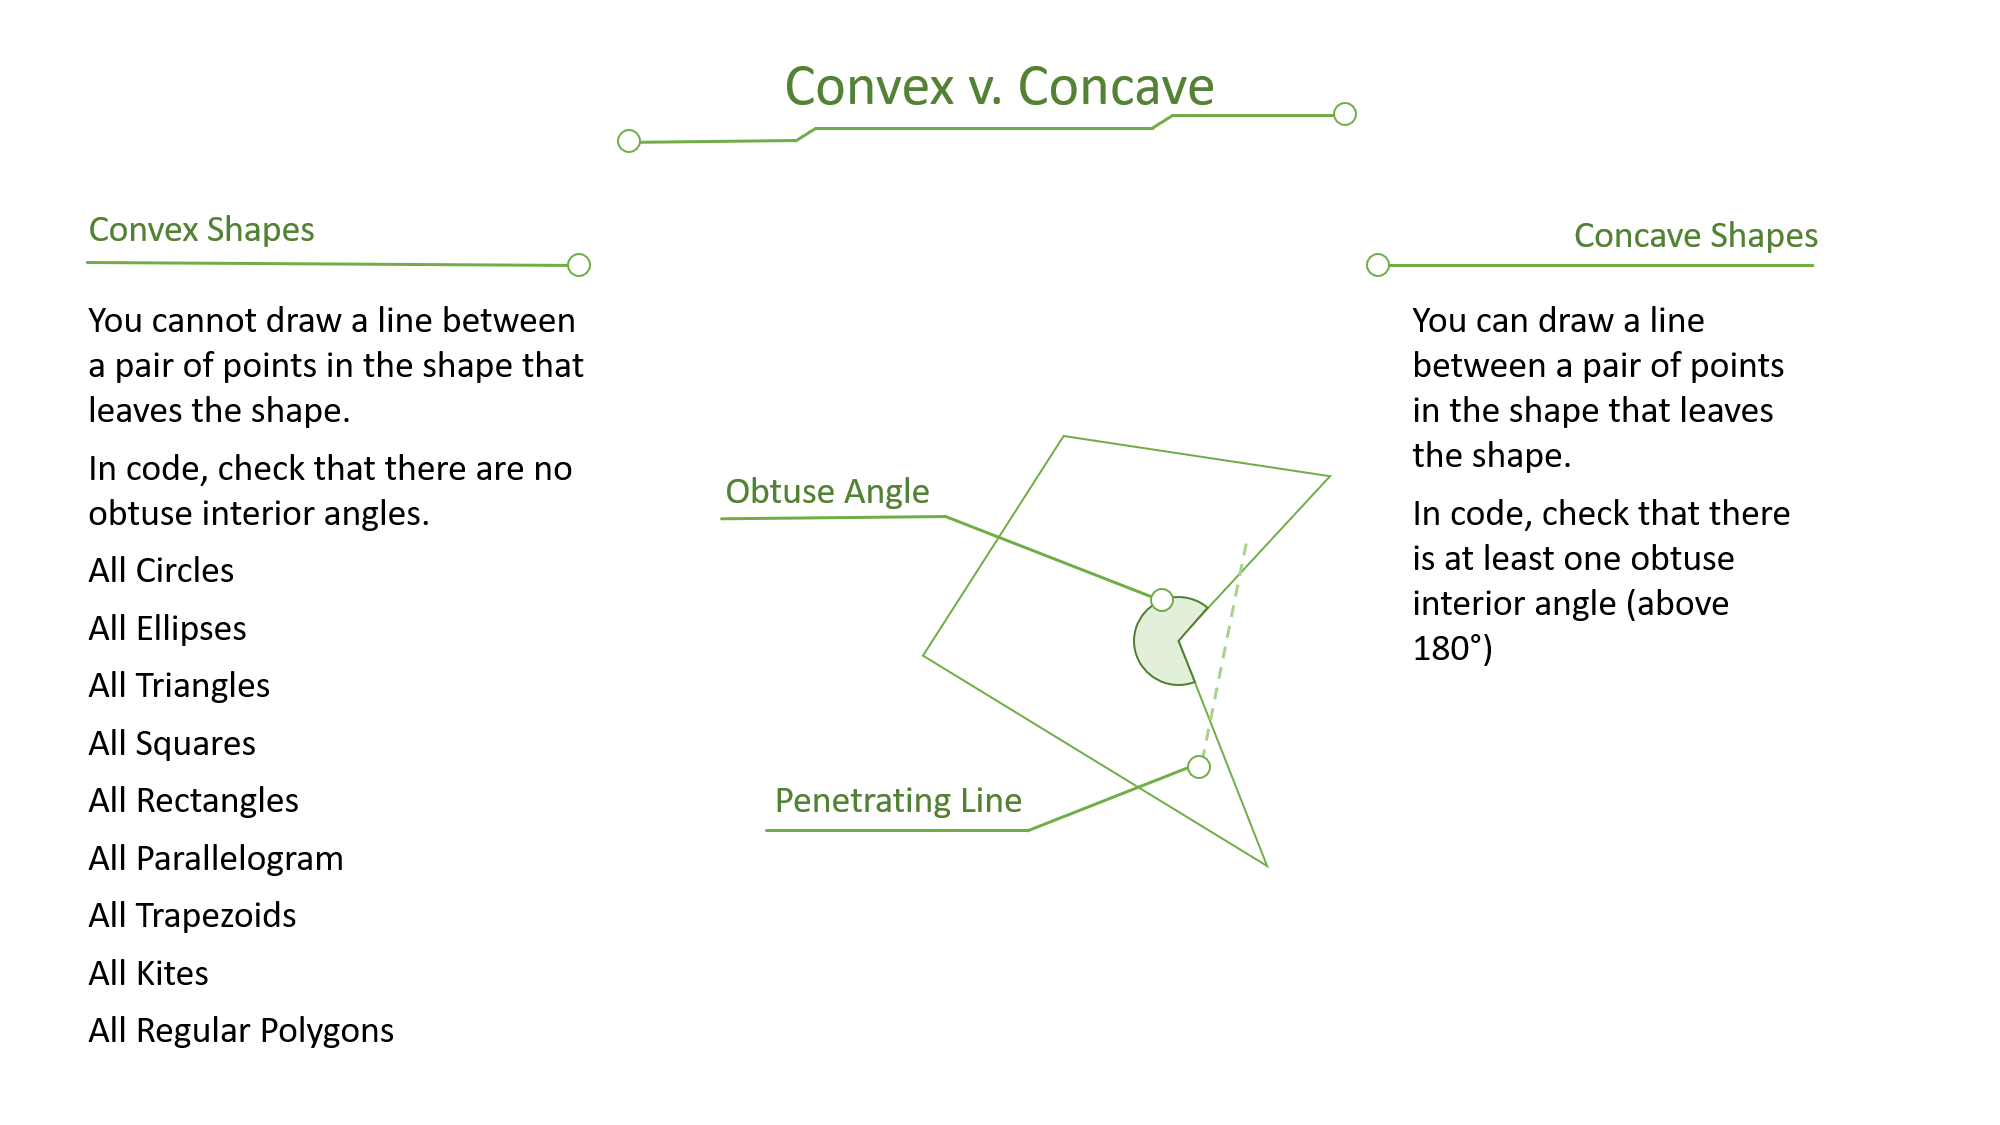 Convex vs Concave